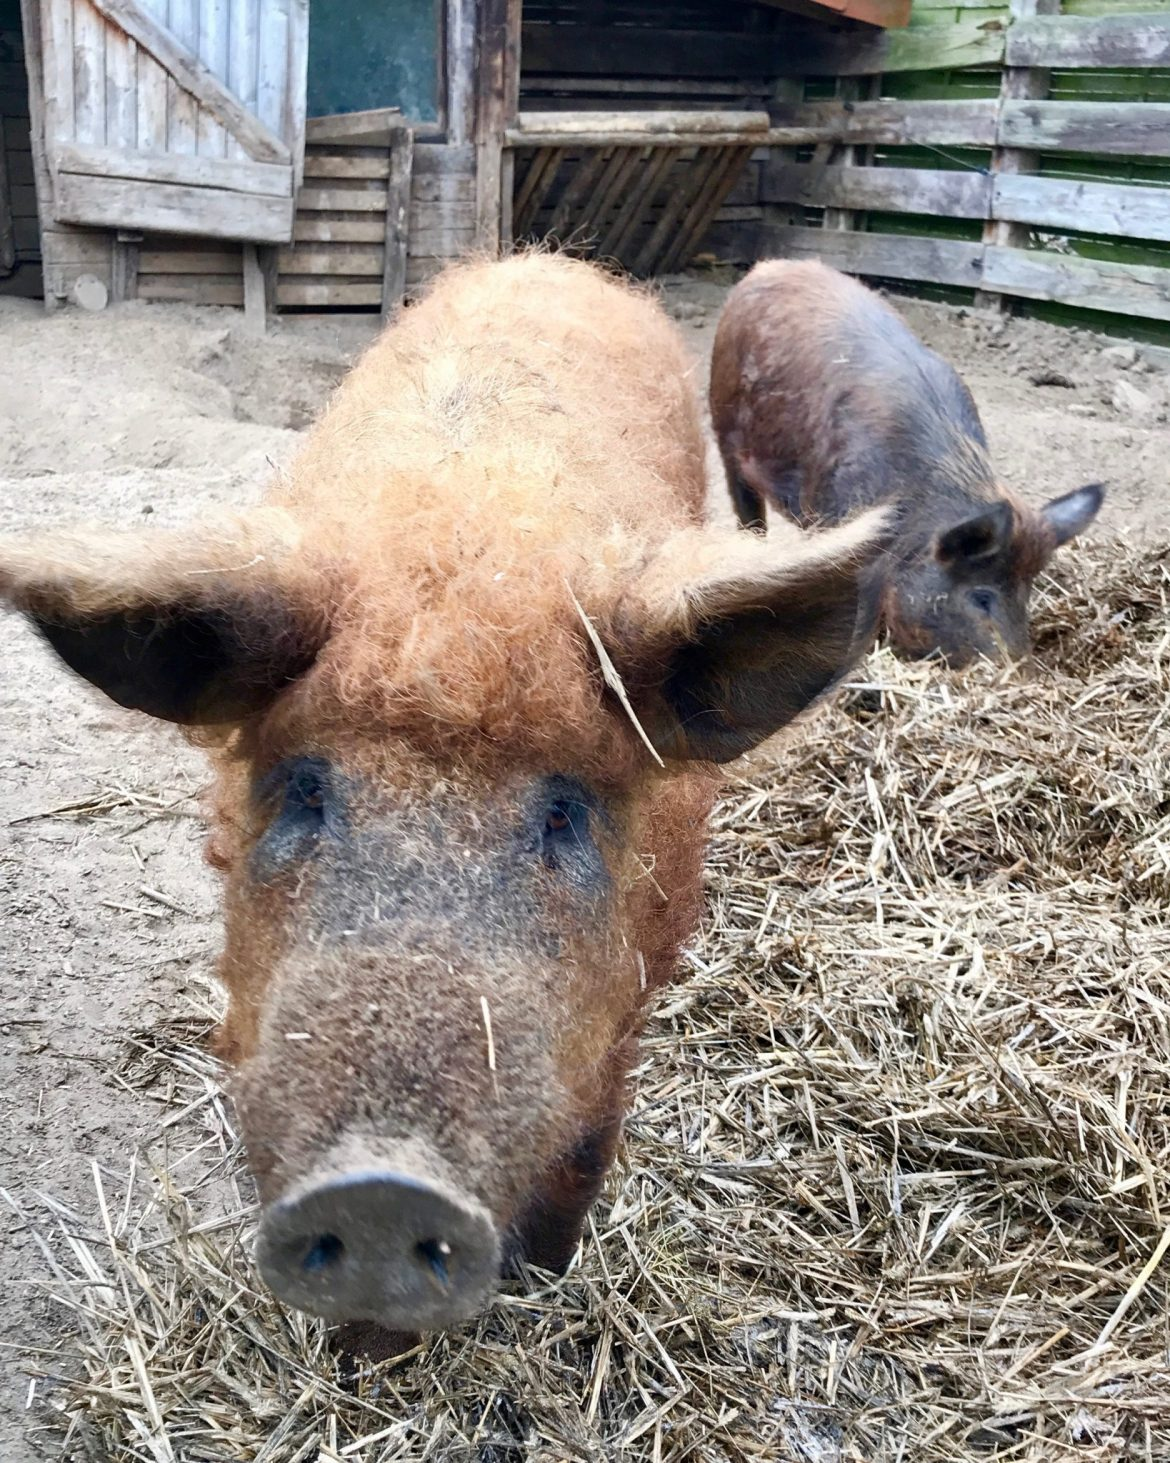 A fuzzy orange-haired Mantalitsa pig in his sty, another pig behind him